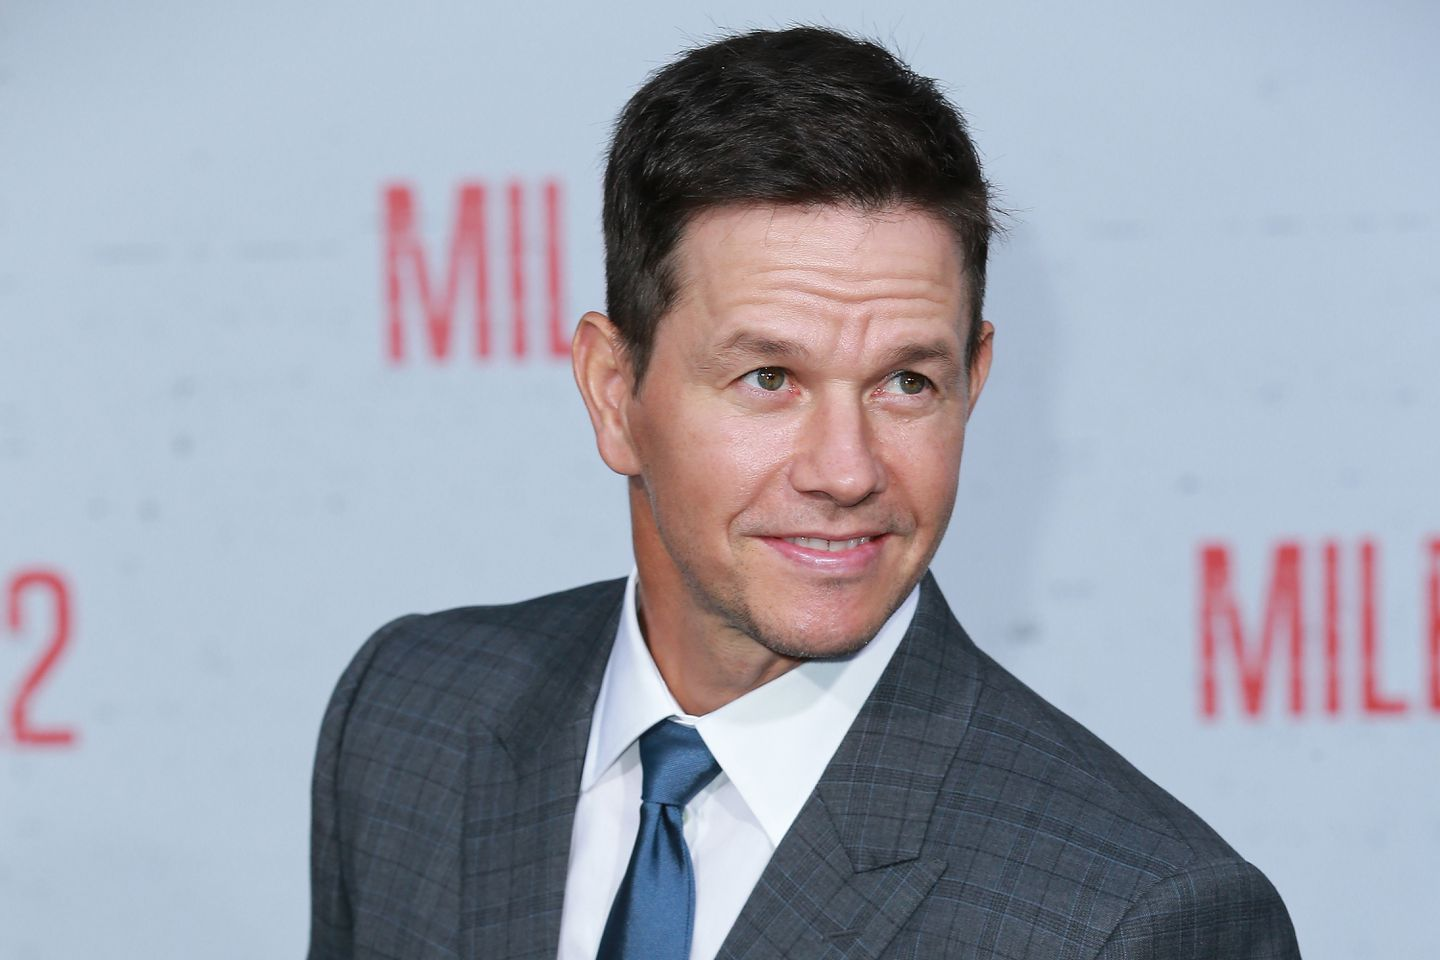 Mark Wahlberg To Star In Boston Based Netflix Original Spenser Confidential The Boston Globe